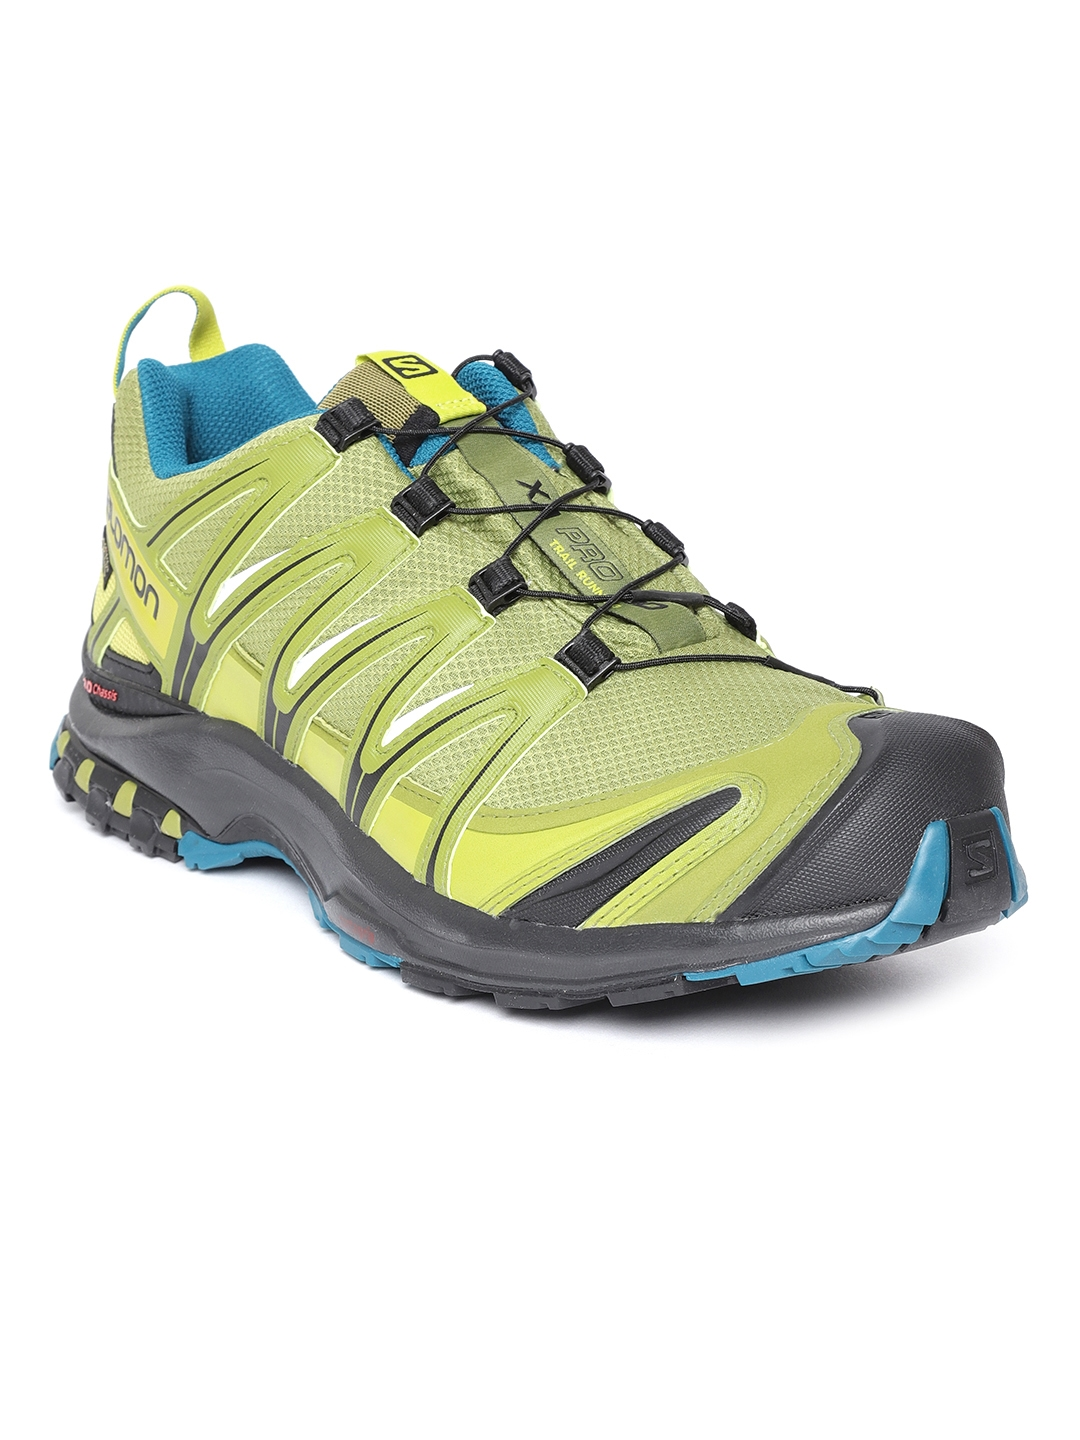 6220f91d5a05 Buy Salomon Men Olive Green Running Shoes - Sports Shoes for Men ...